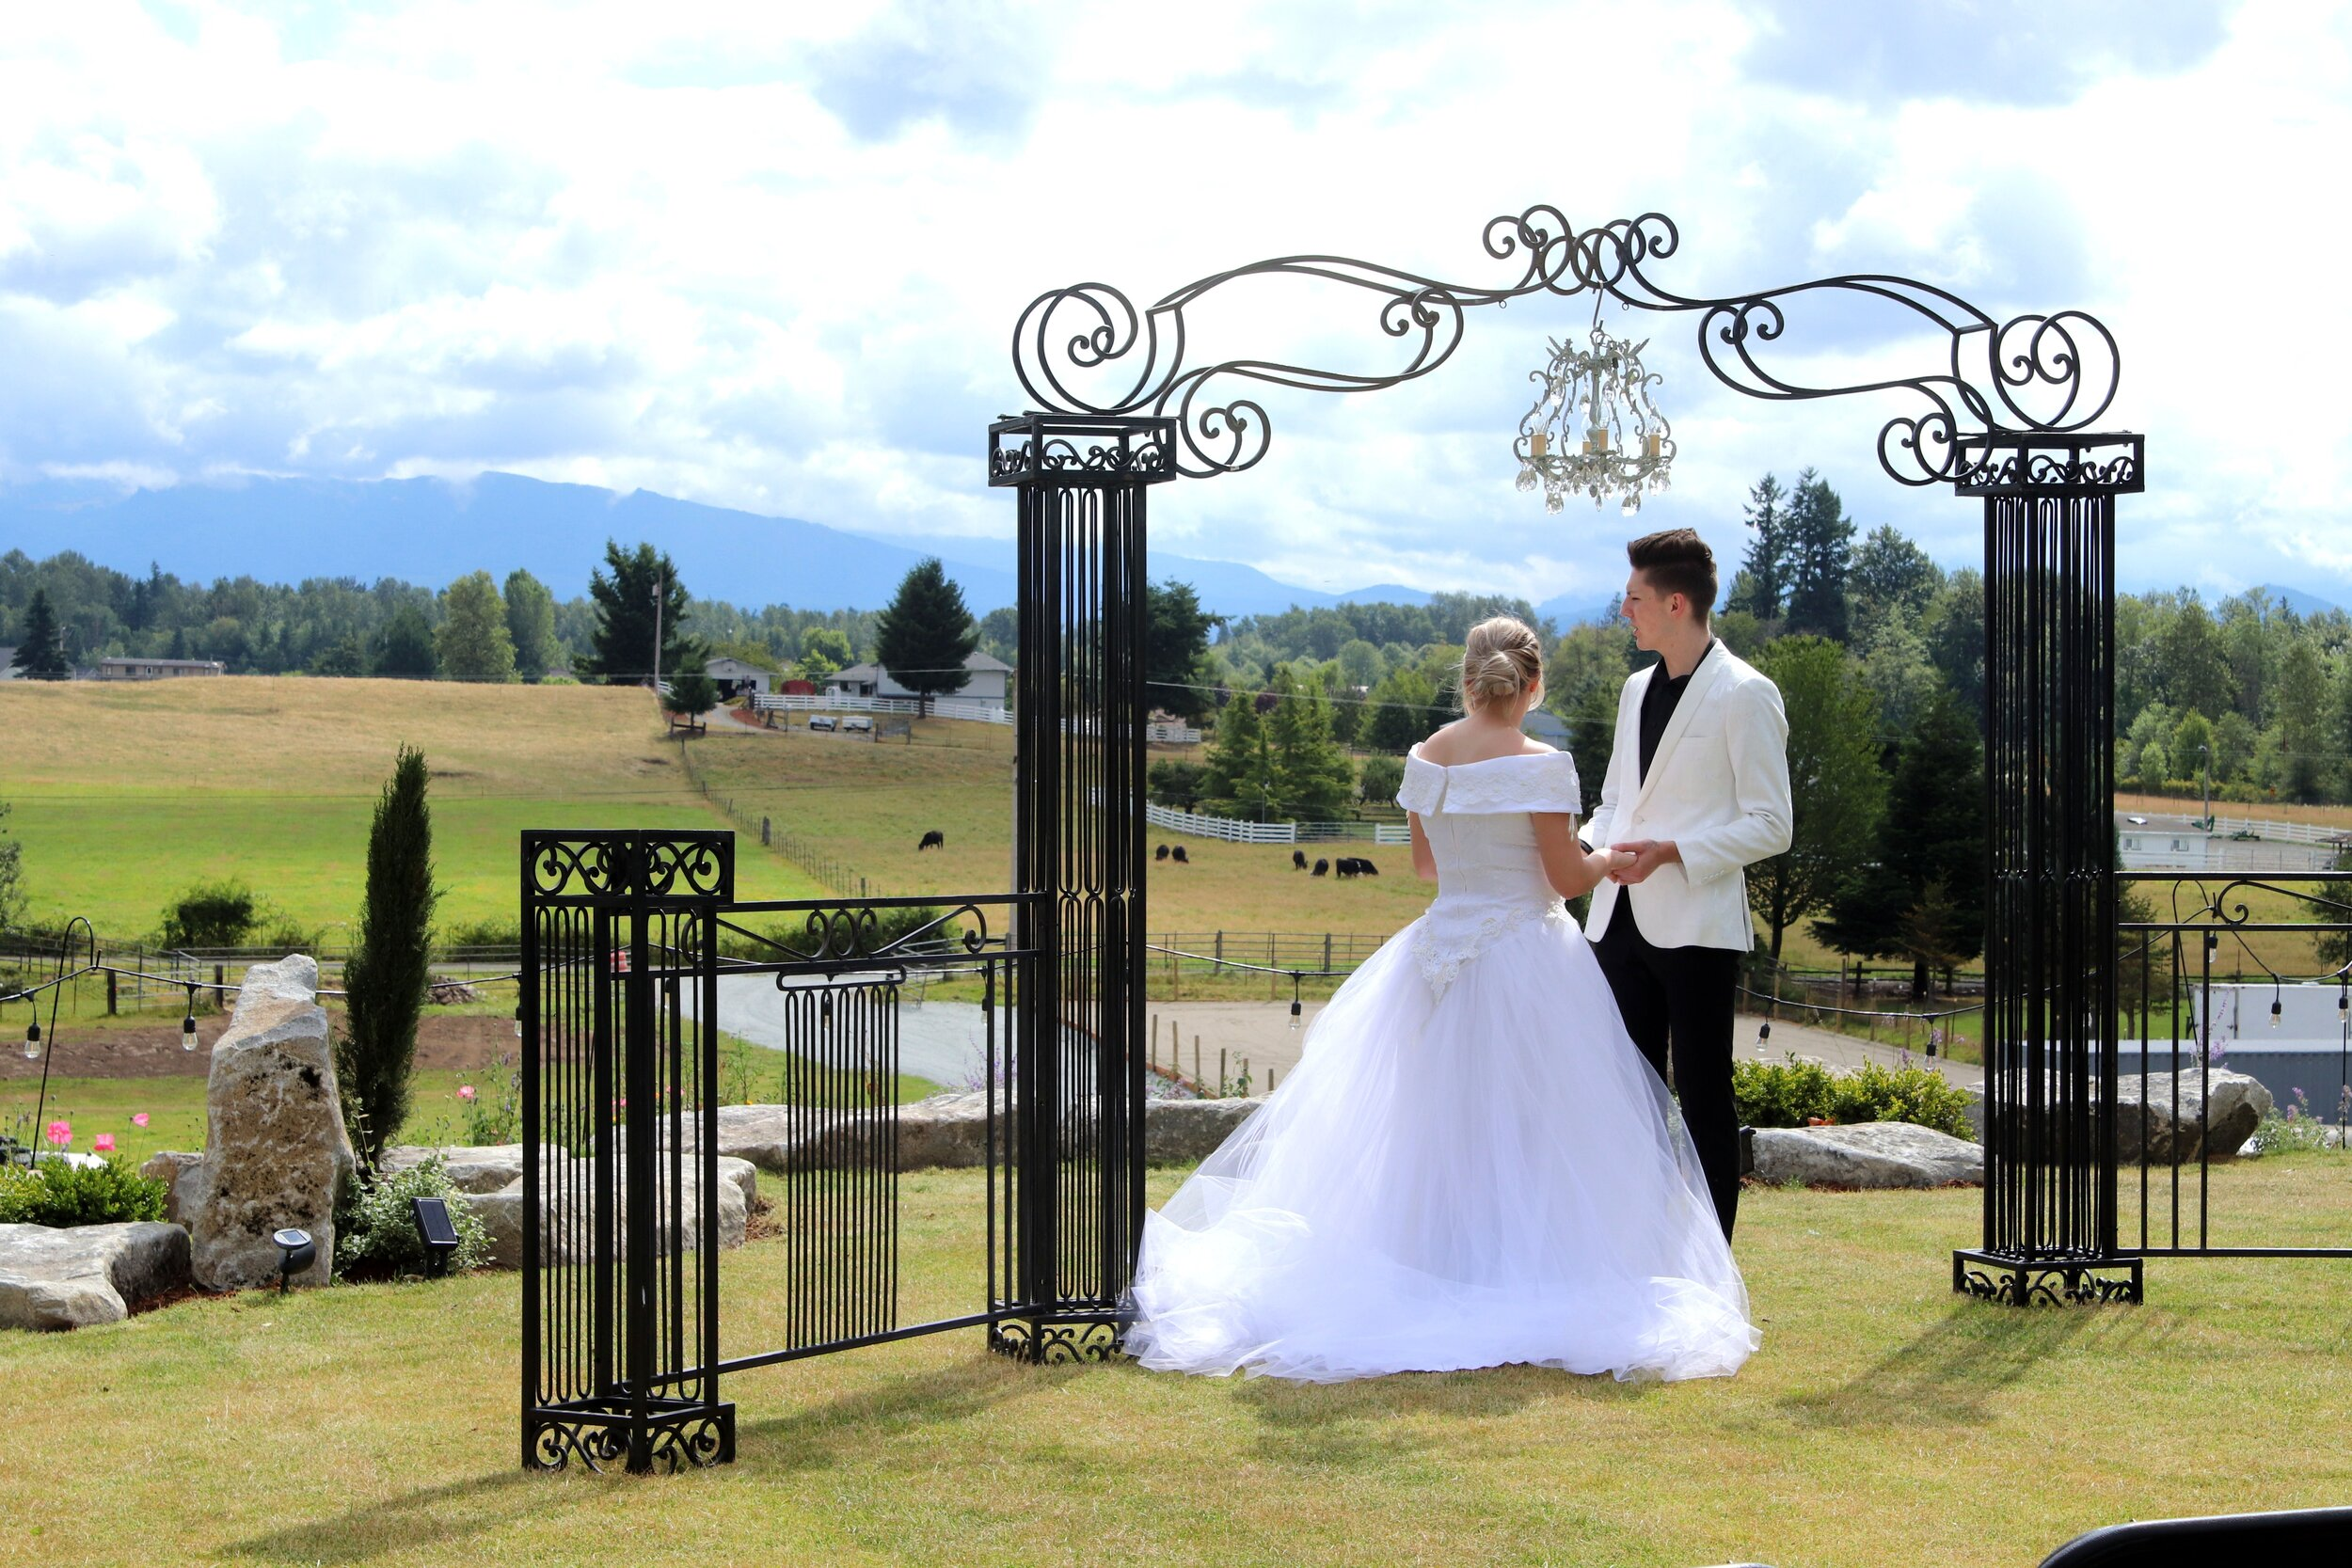 The Hidden Farm   253-244-1021   EMAIL   A 100 yr old working farm, indoor or outdoor weddings on the hillside or under covered pavilion for up to 225 guests, breathtaking views of Mt. Rainier and rolling hills, Bridal Cottage and old barn to enjoy!